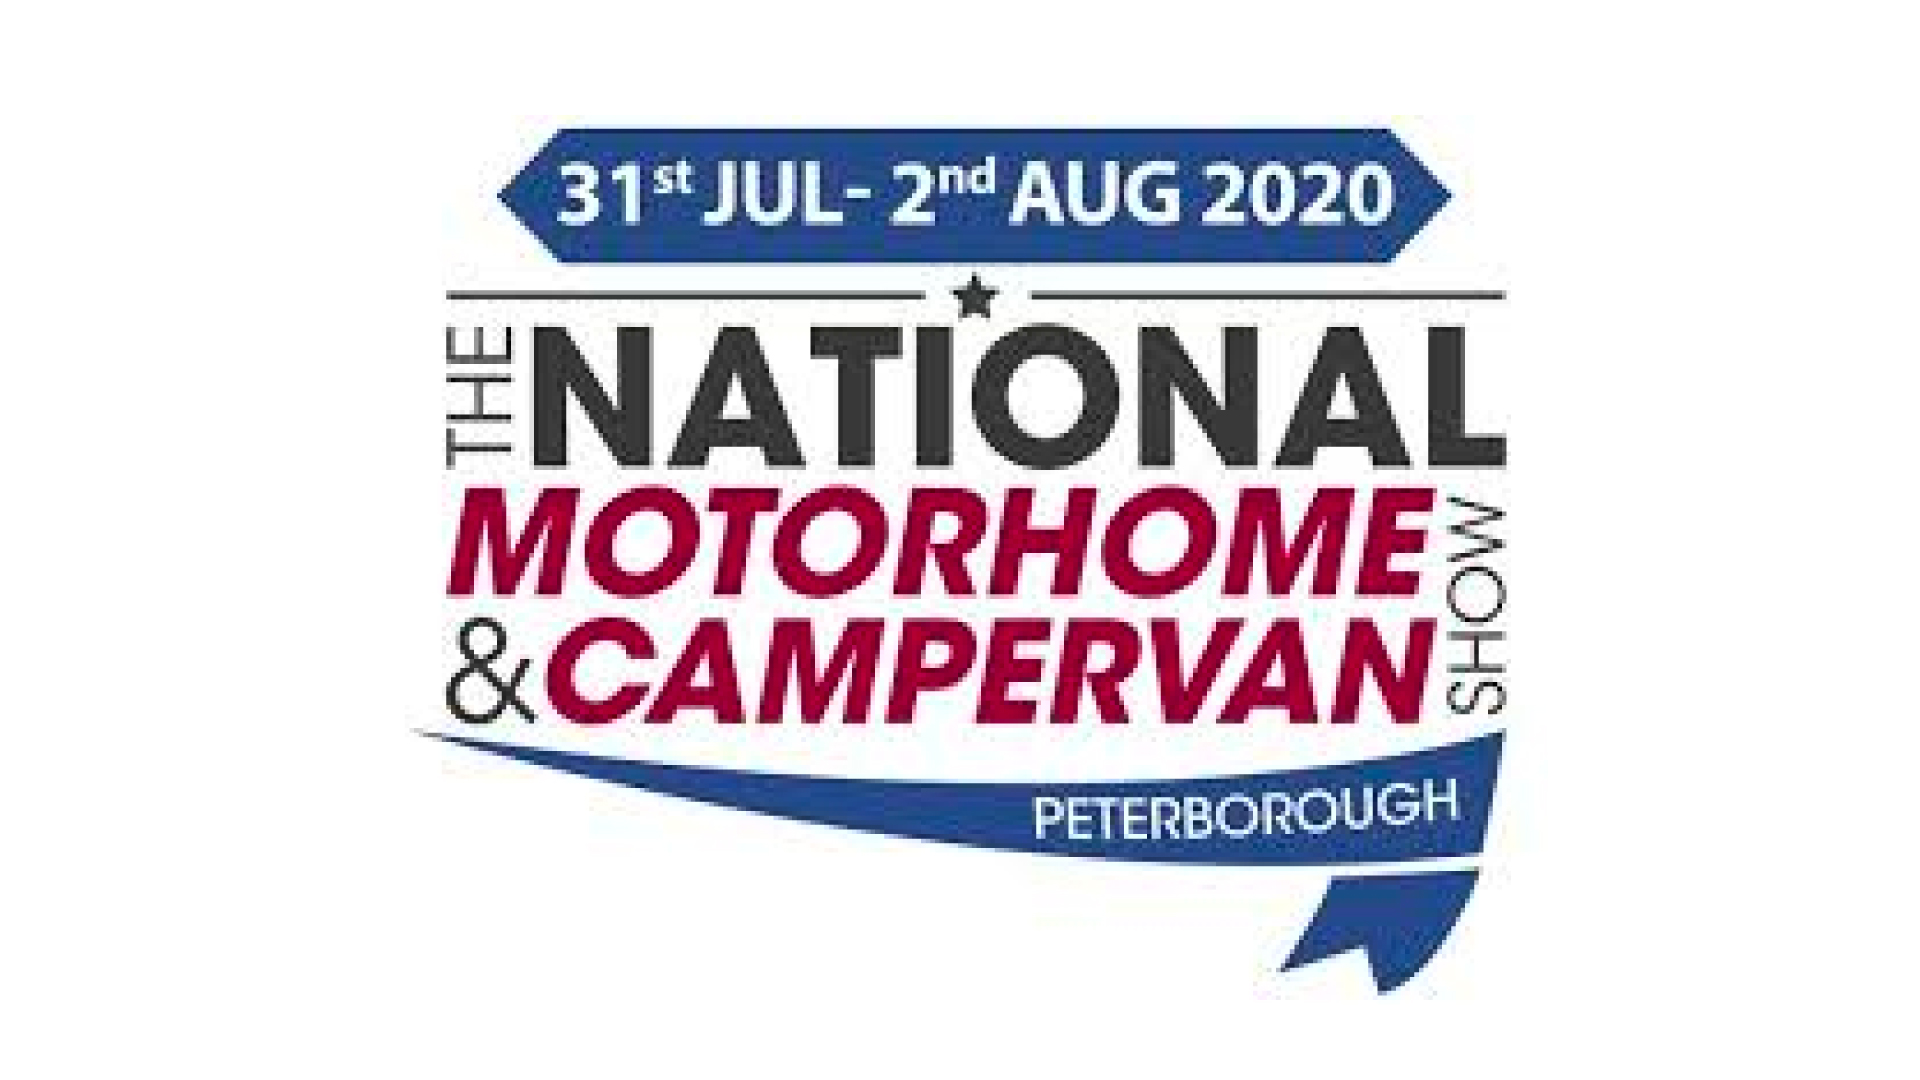 Warners shows National motorhome and campervan show, Peterborough, July 31st 2020